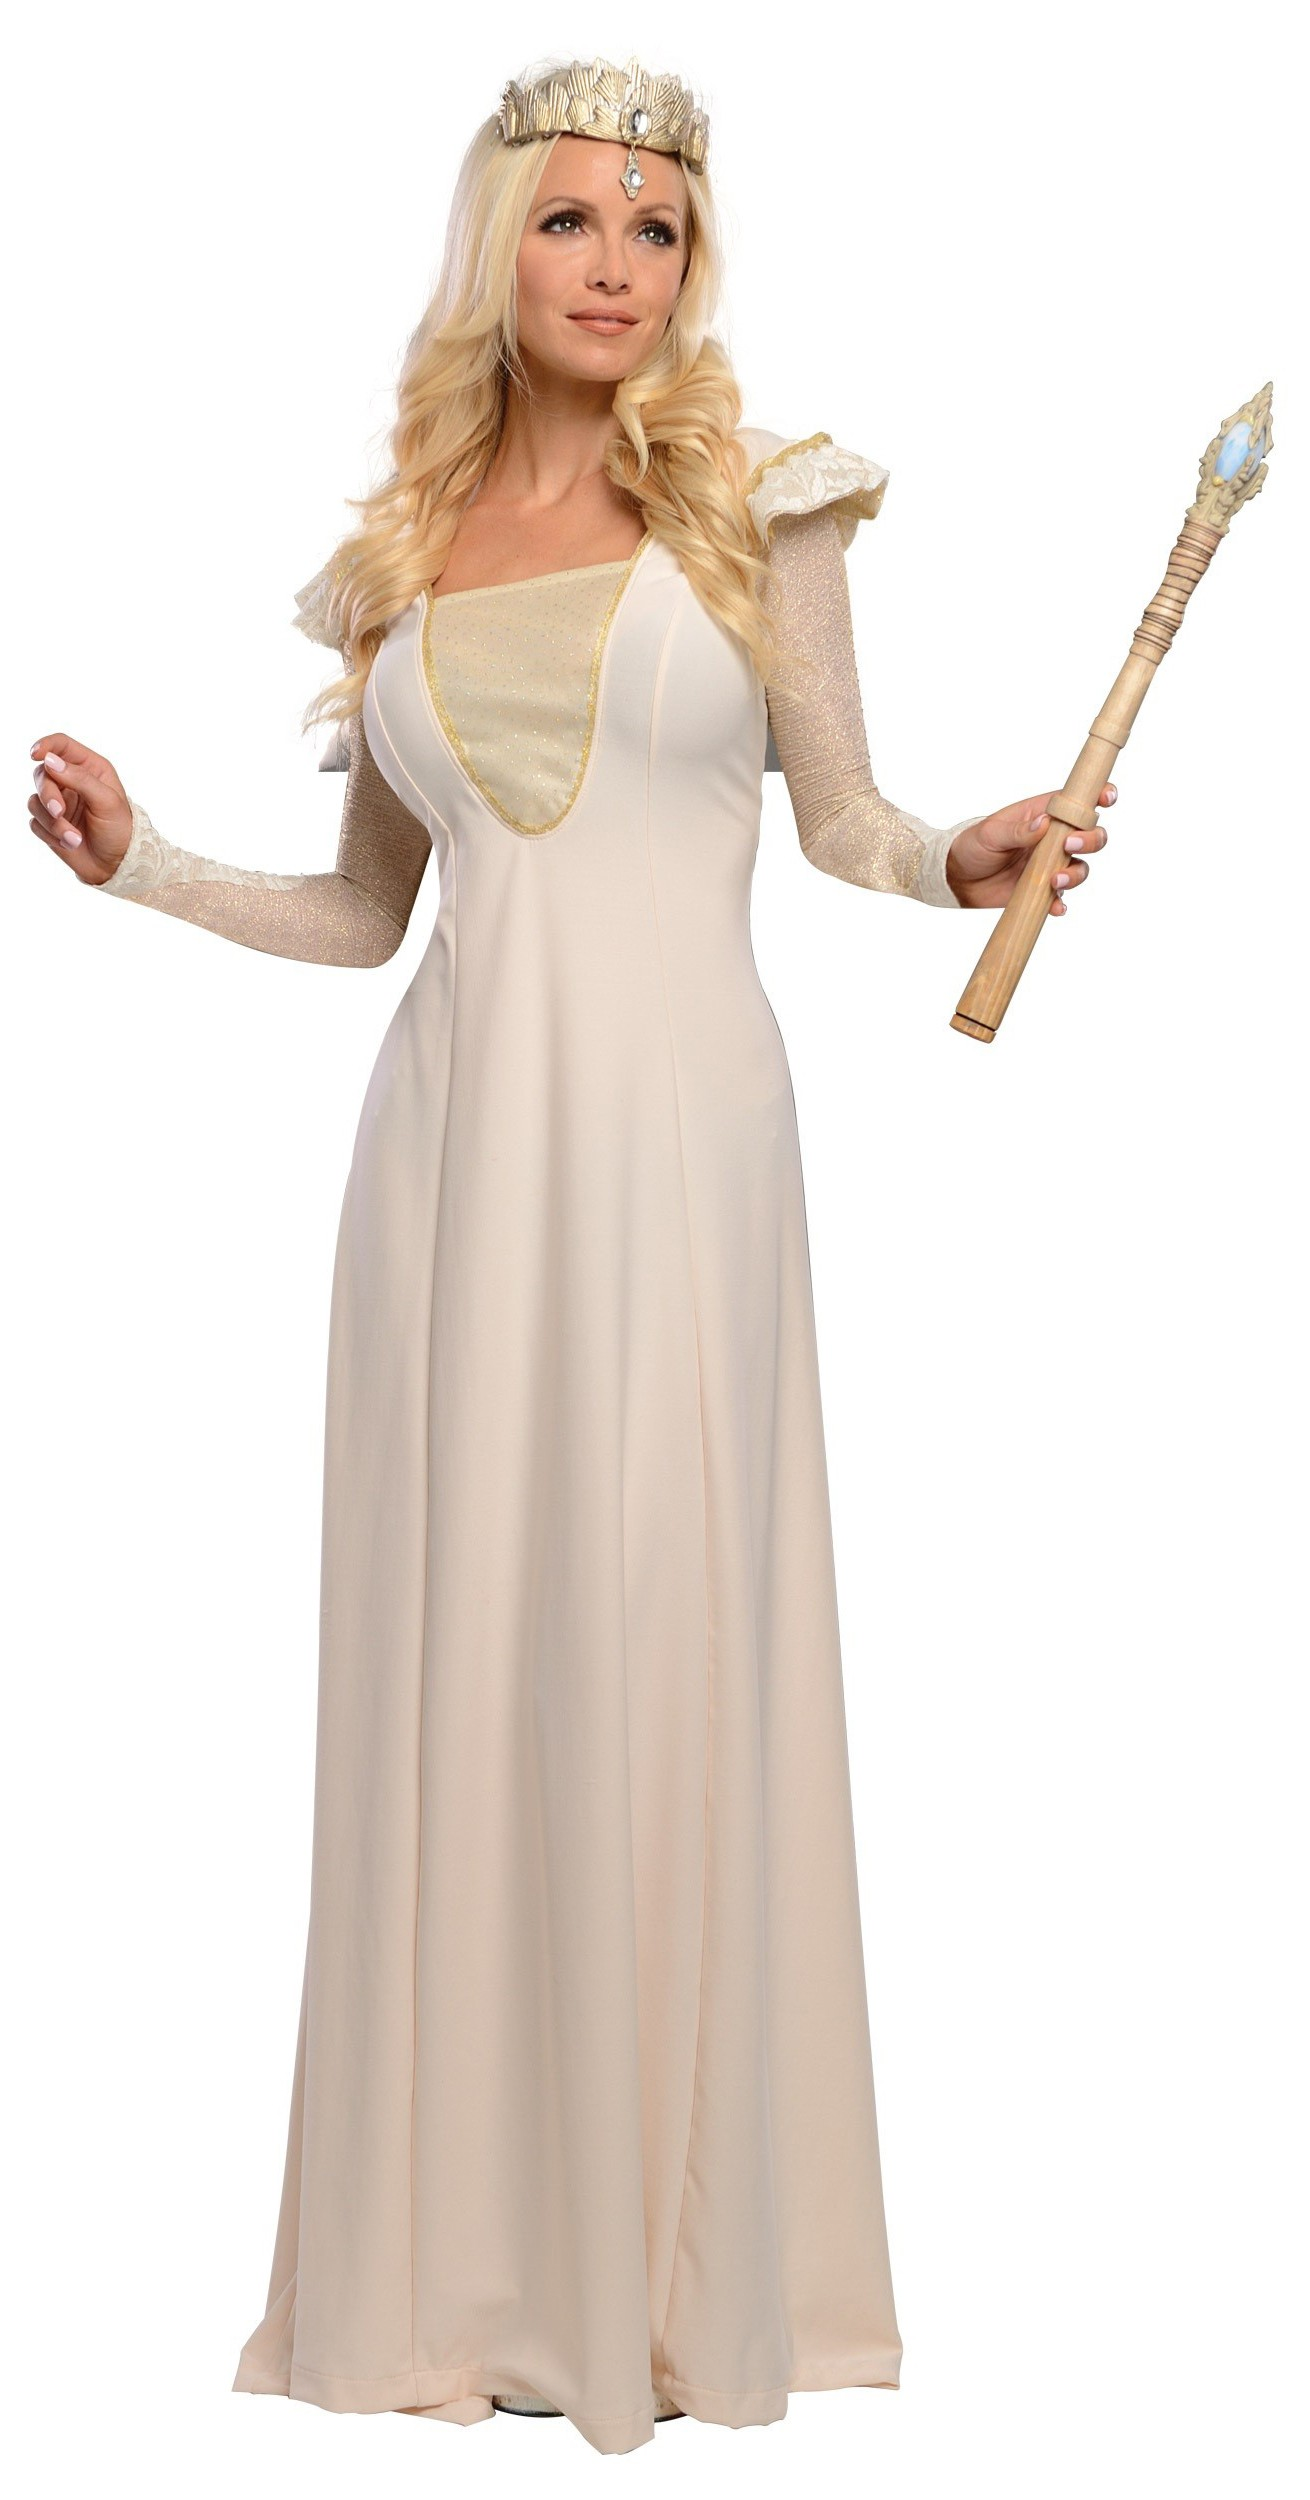 454cc00d114 Oz The Great And Powerful Deluxe Glinda Adult Women s Costume ...